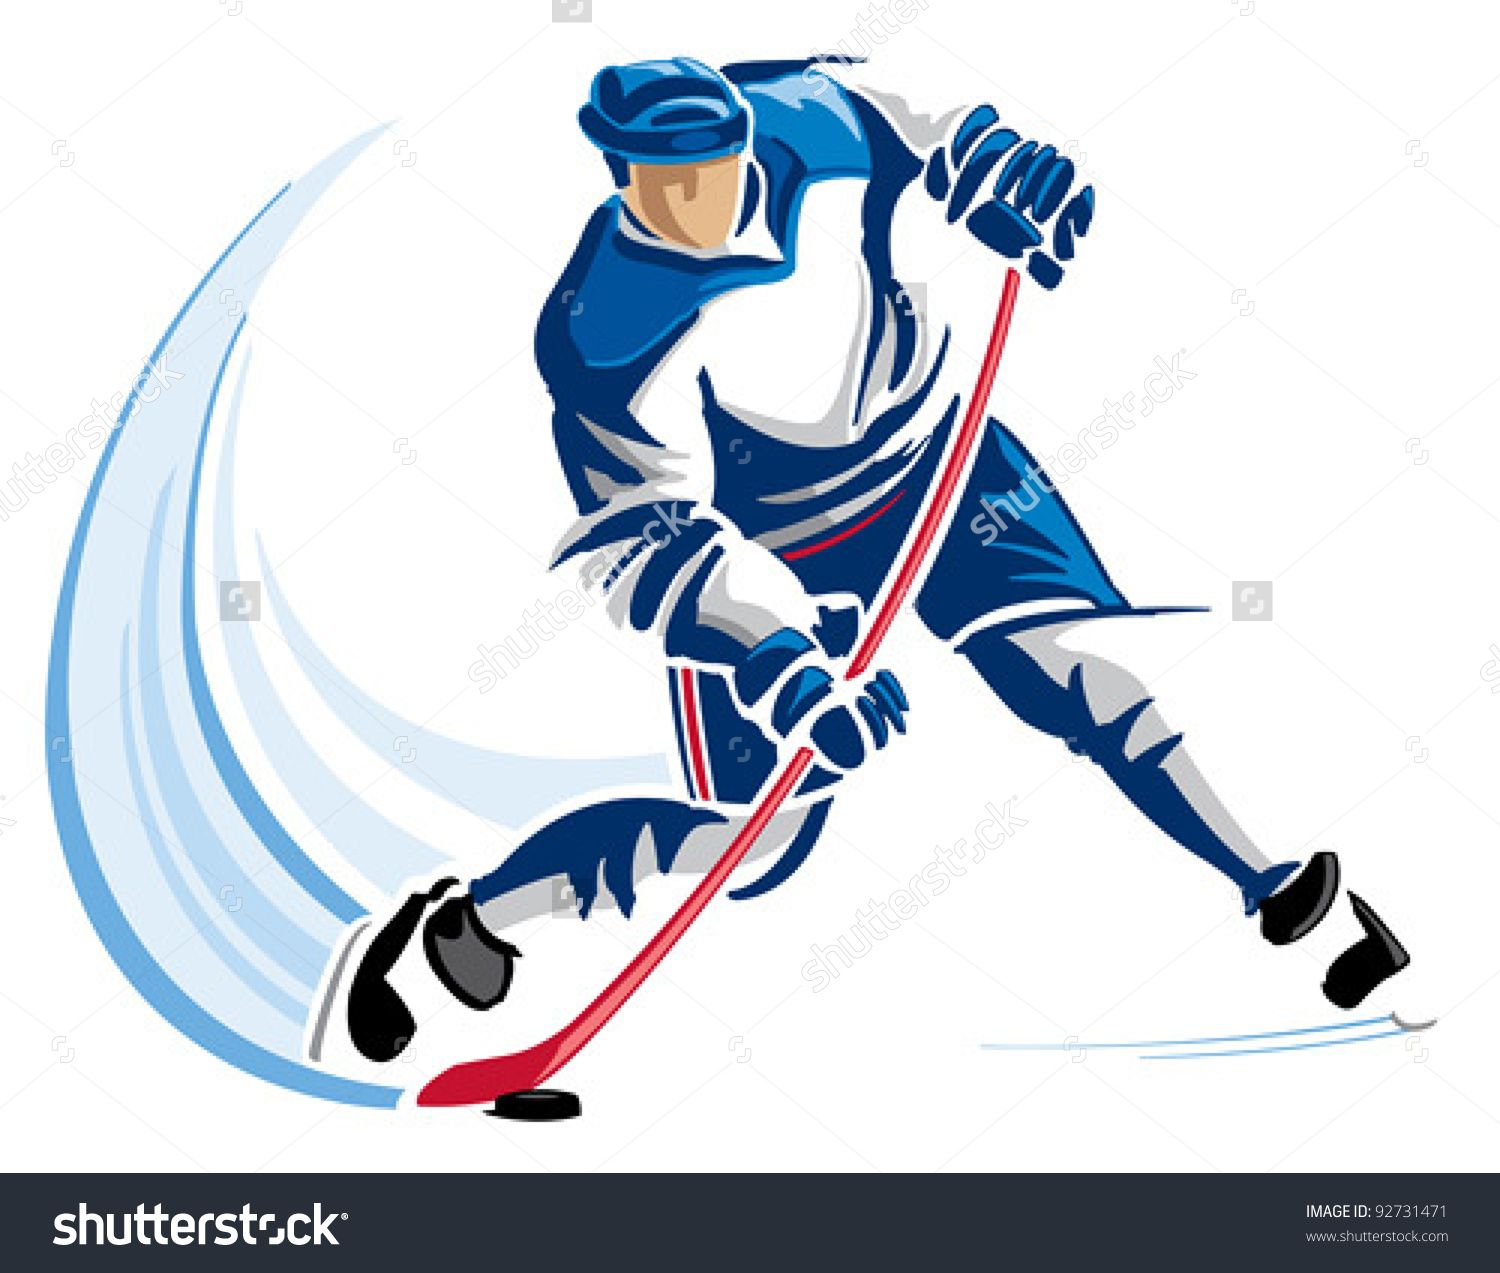 Hockey Player Stock Photos, Images, & Pictures | Shutterstock ...